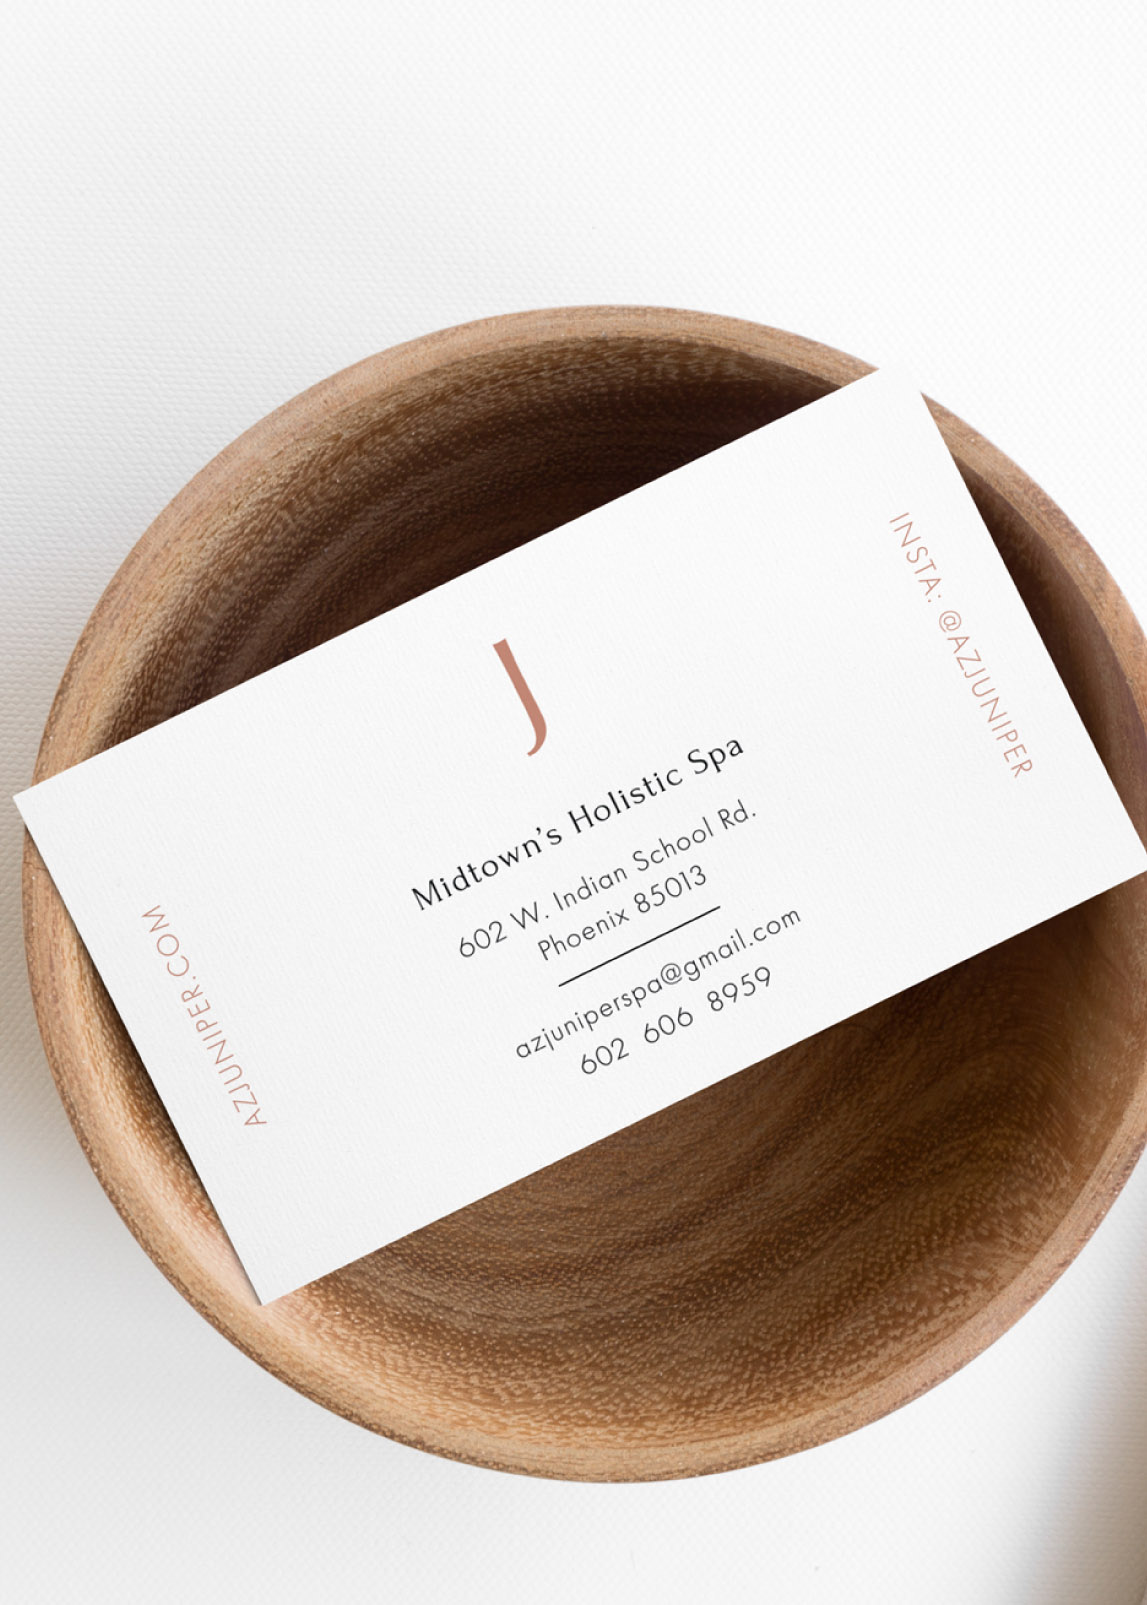 Minimal Branding and Business Card Design for Luxury Holistic Spa - Made by NF.jpg